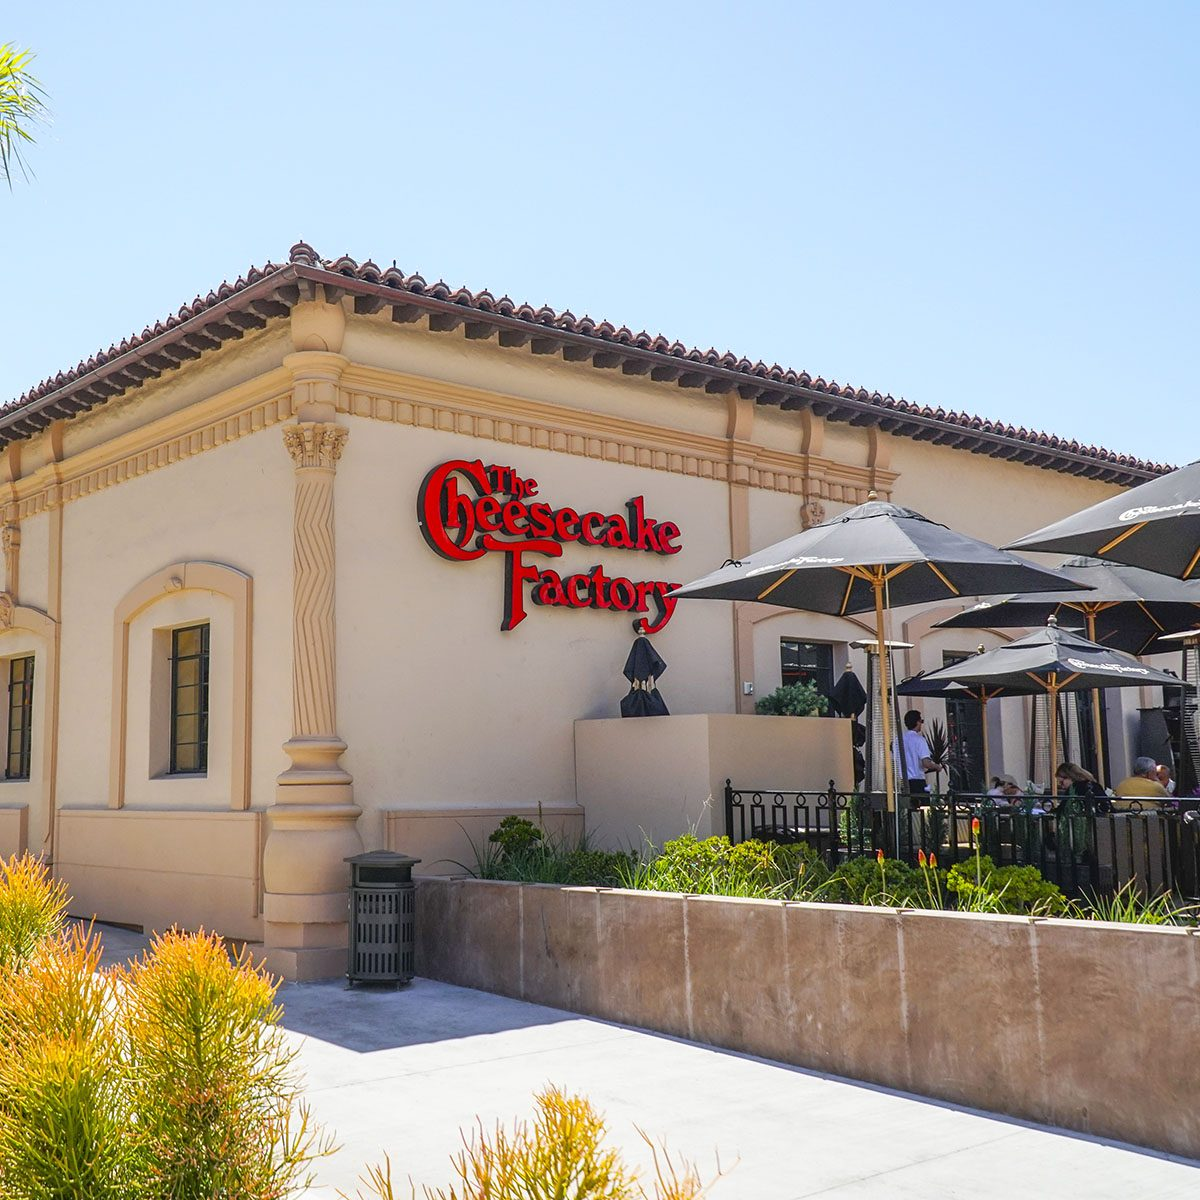 Cheesecake factory in San Diego